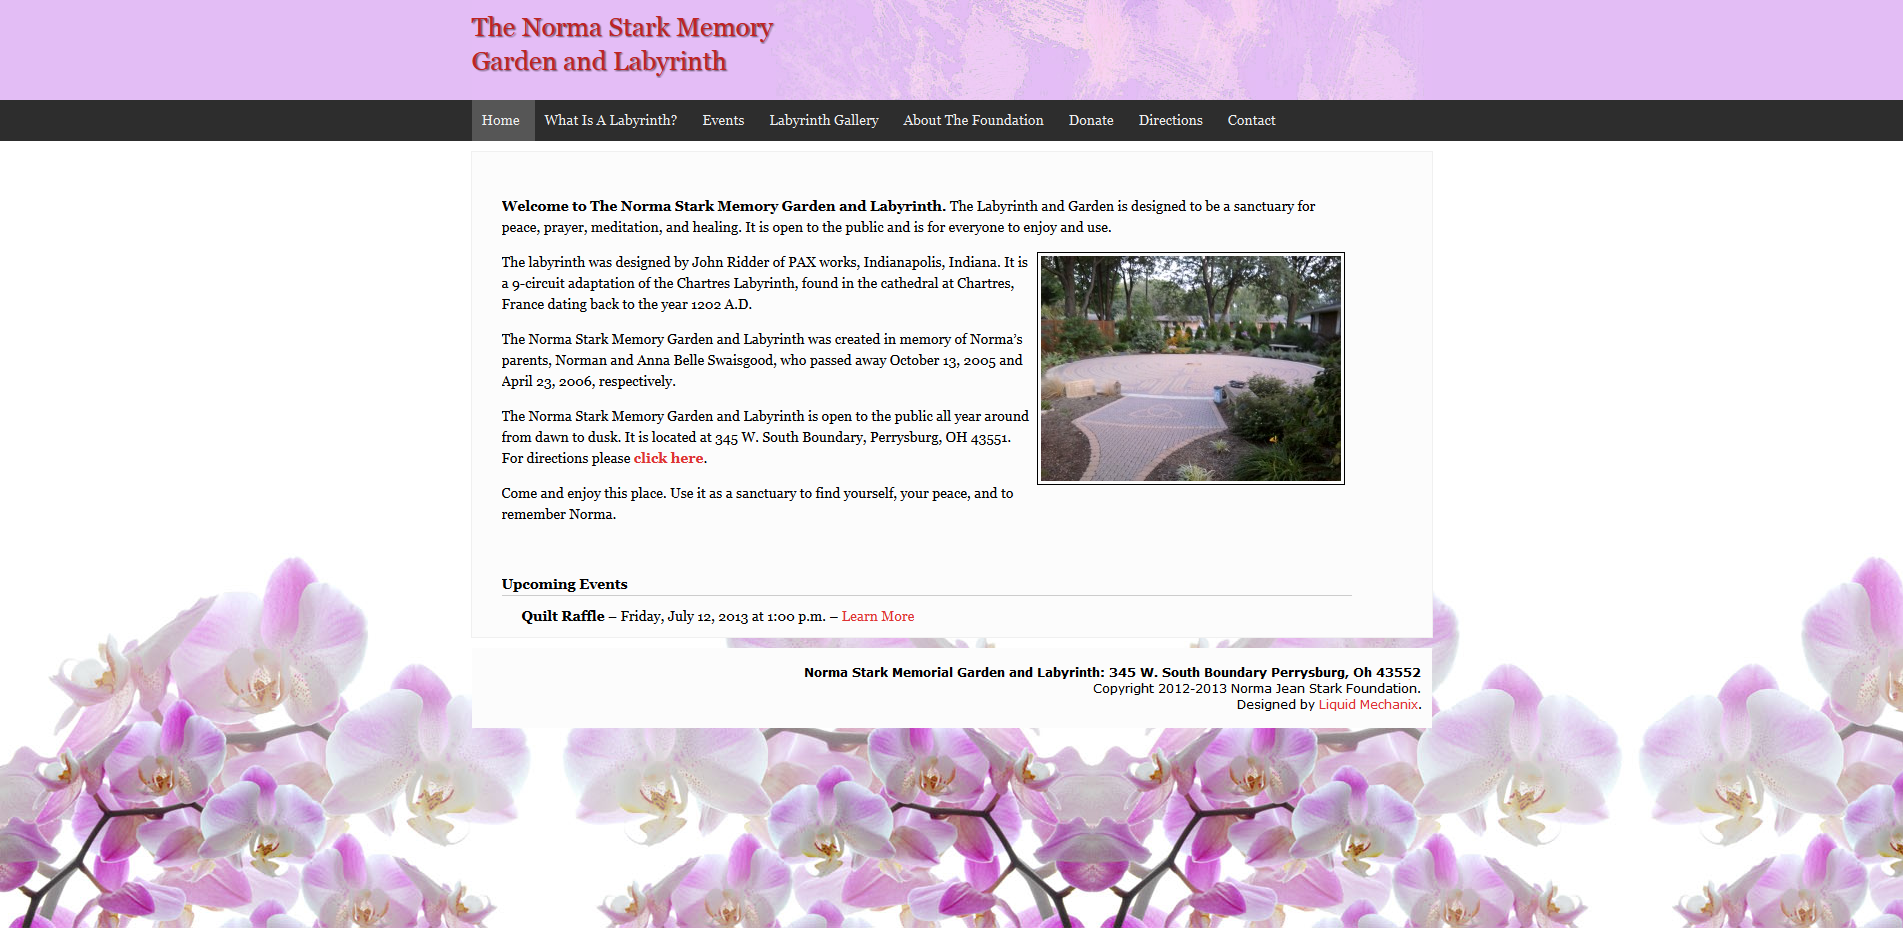 The Norma Stark Memory Garden and Labyrinth_20130802-150238.png